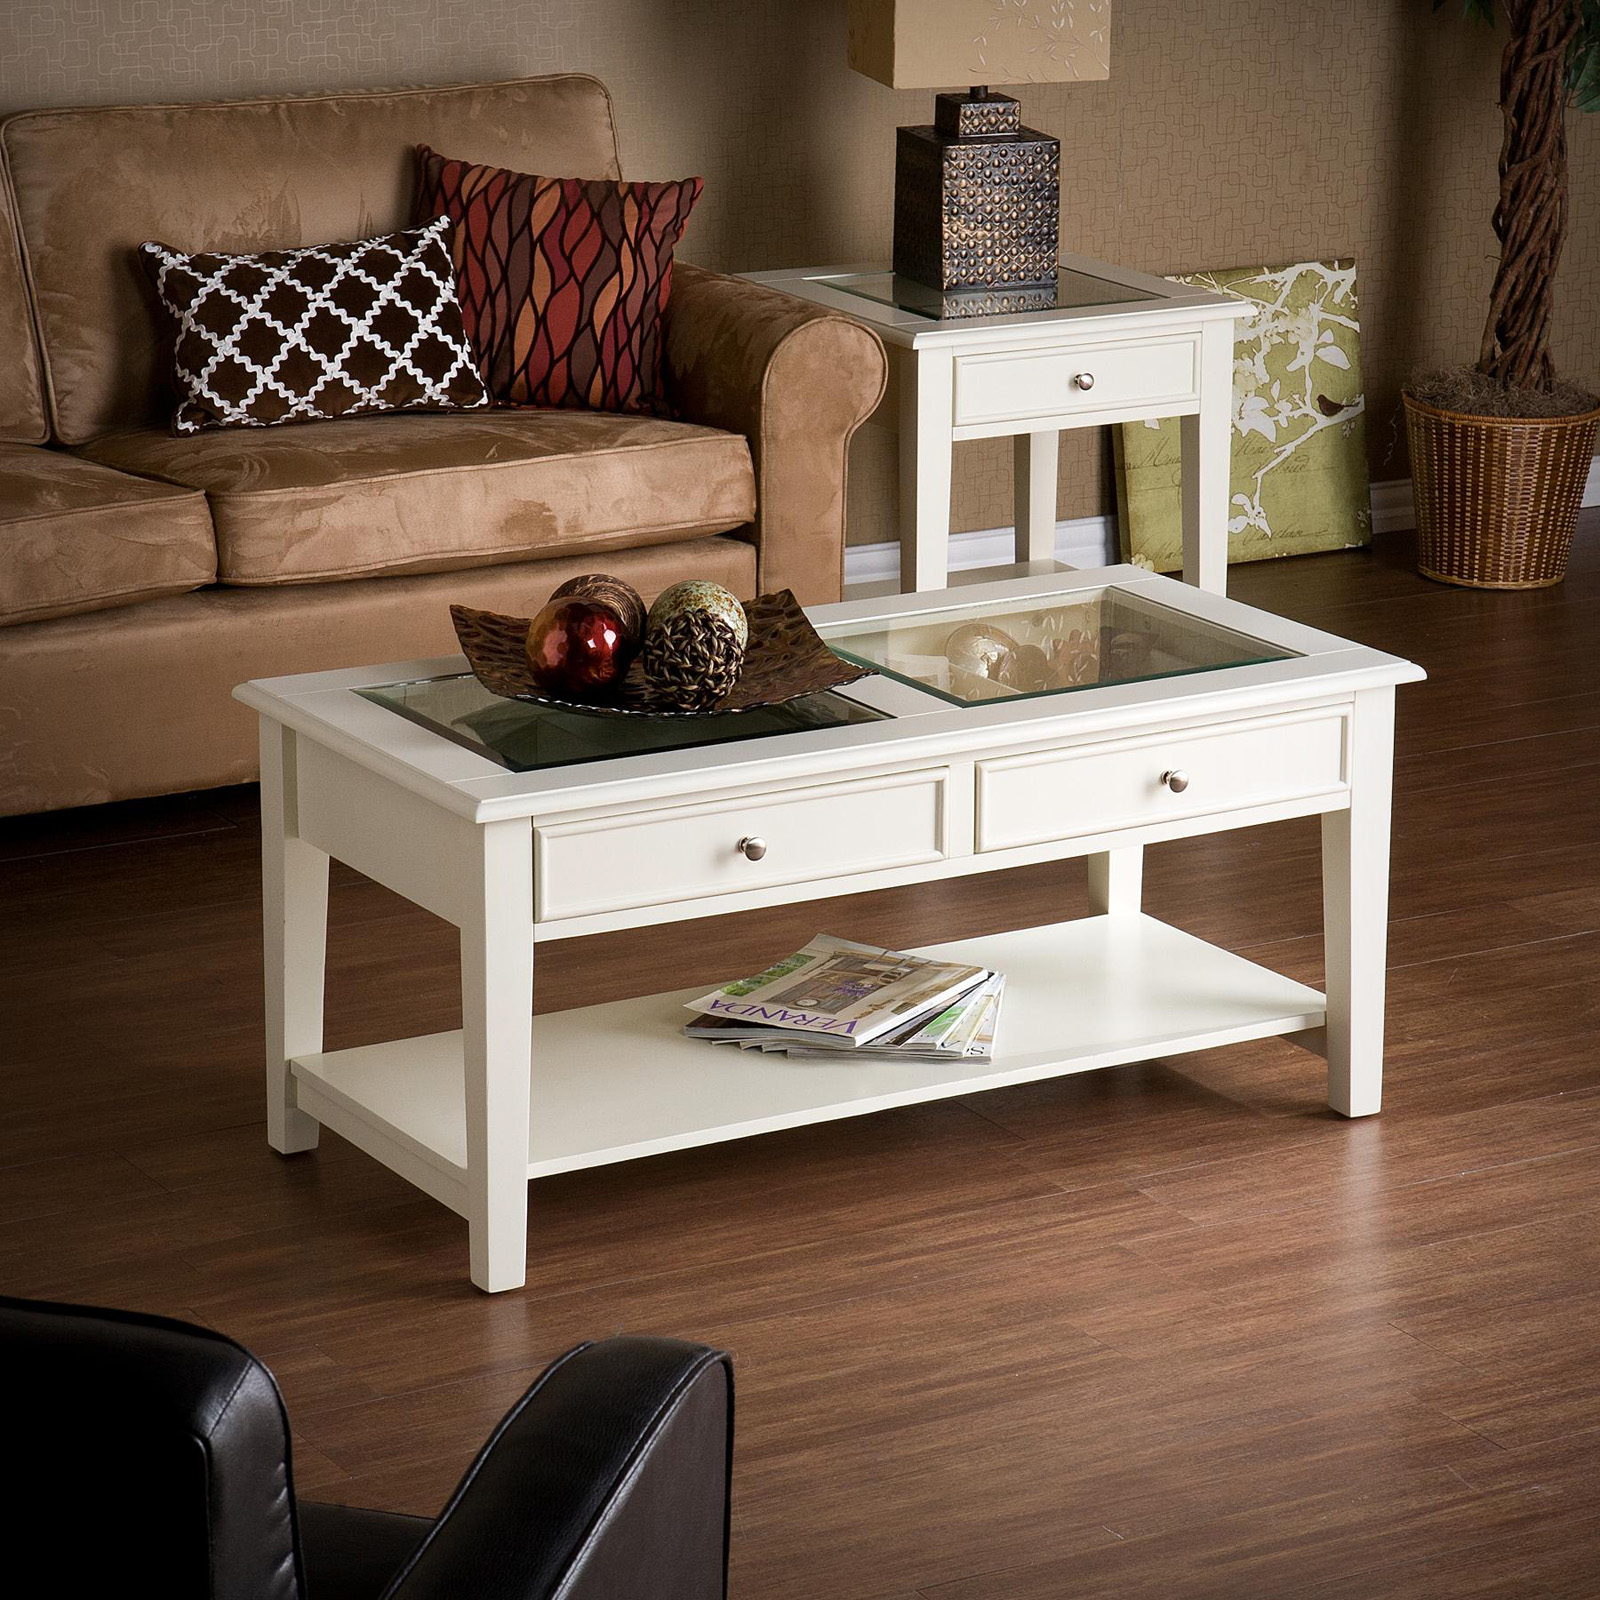 Belham Living Jocelyn Coffee Table White Walnut